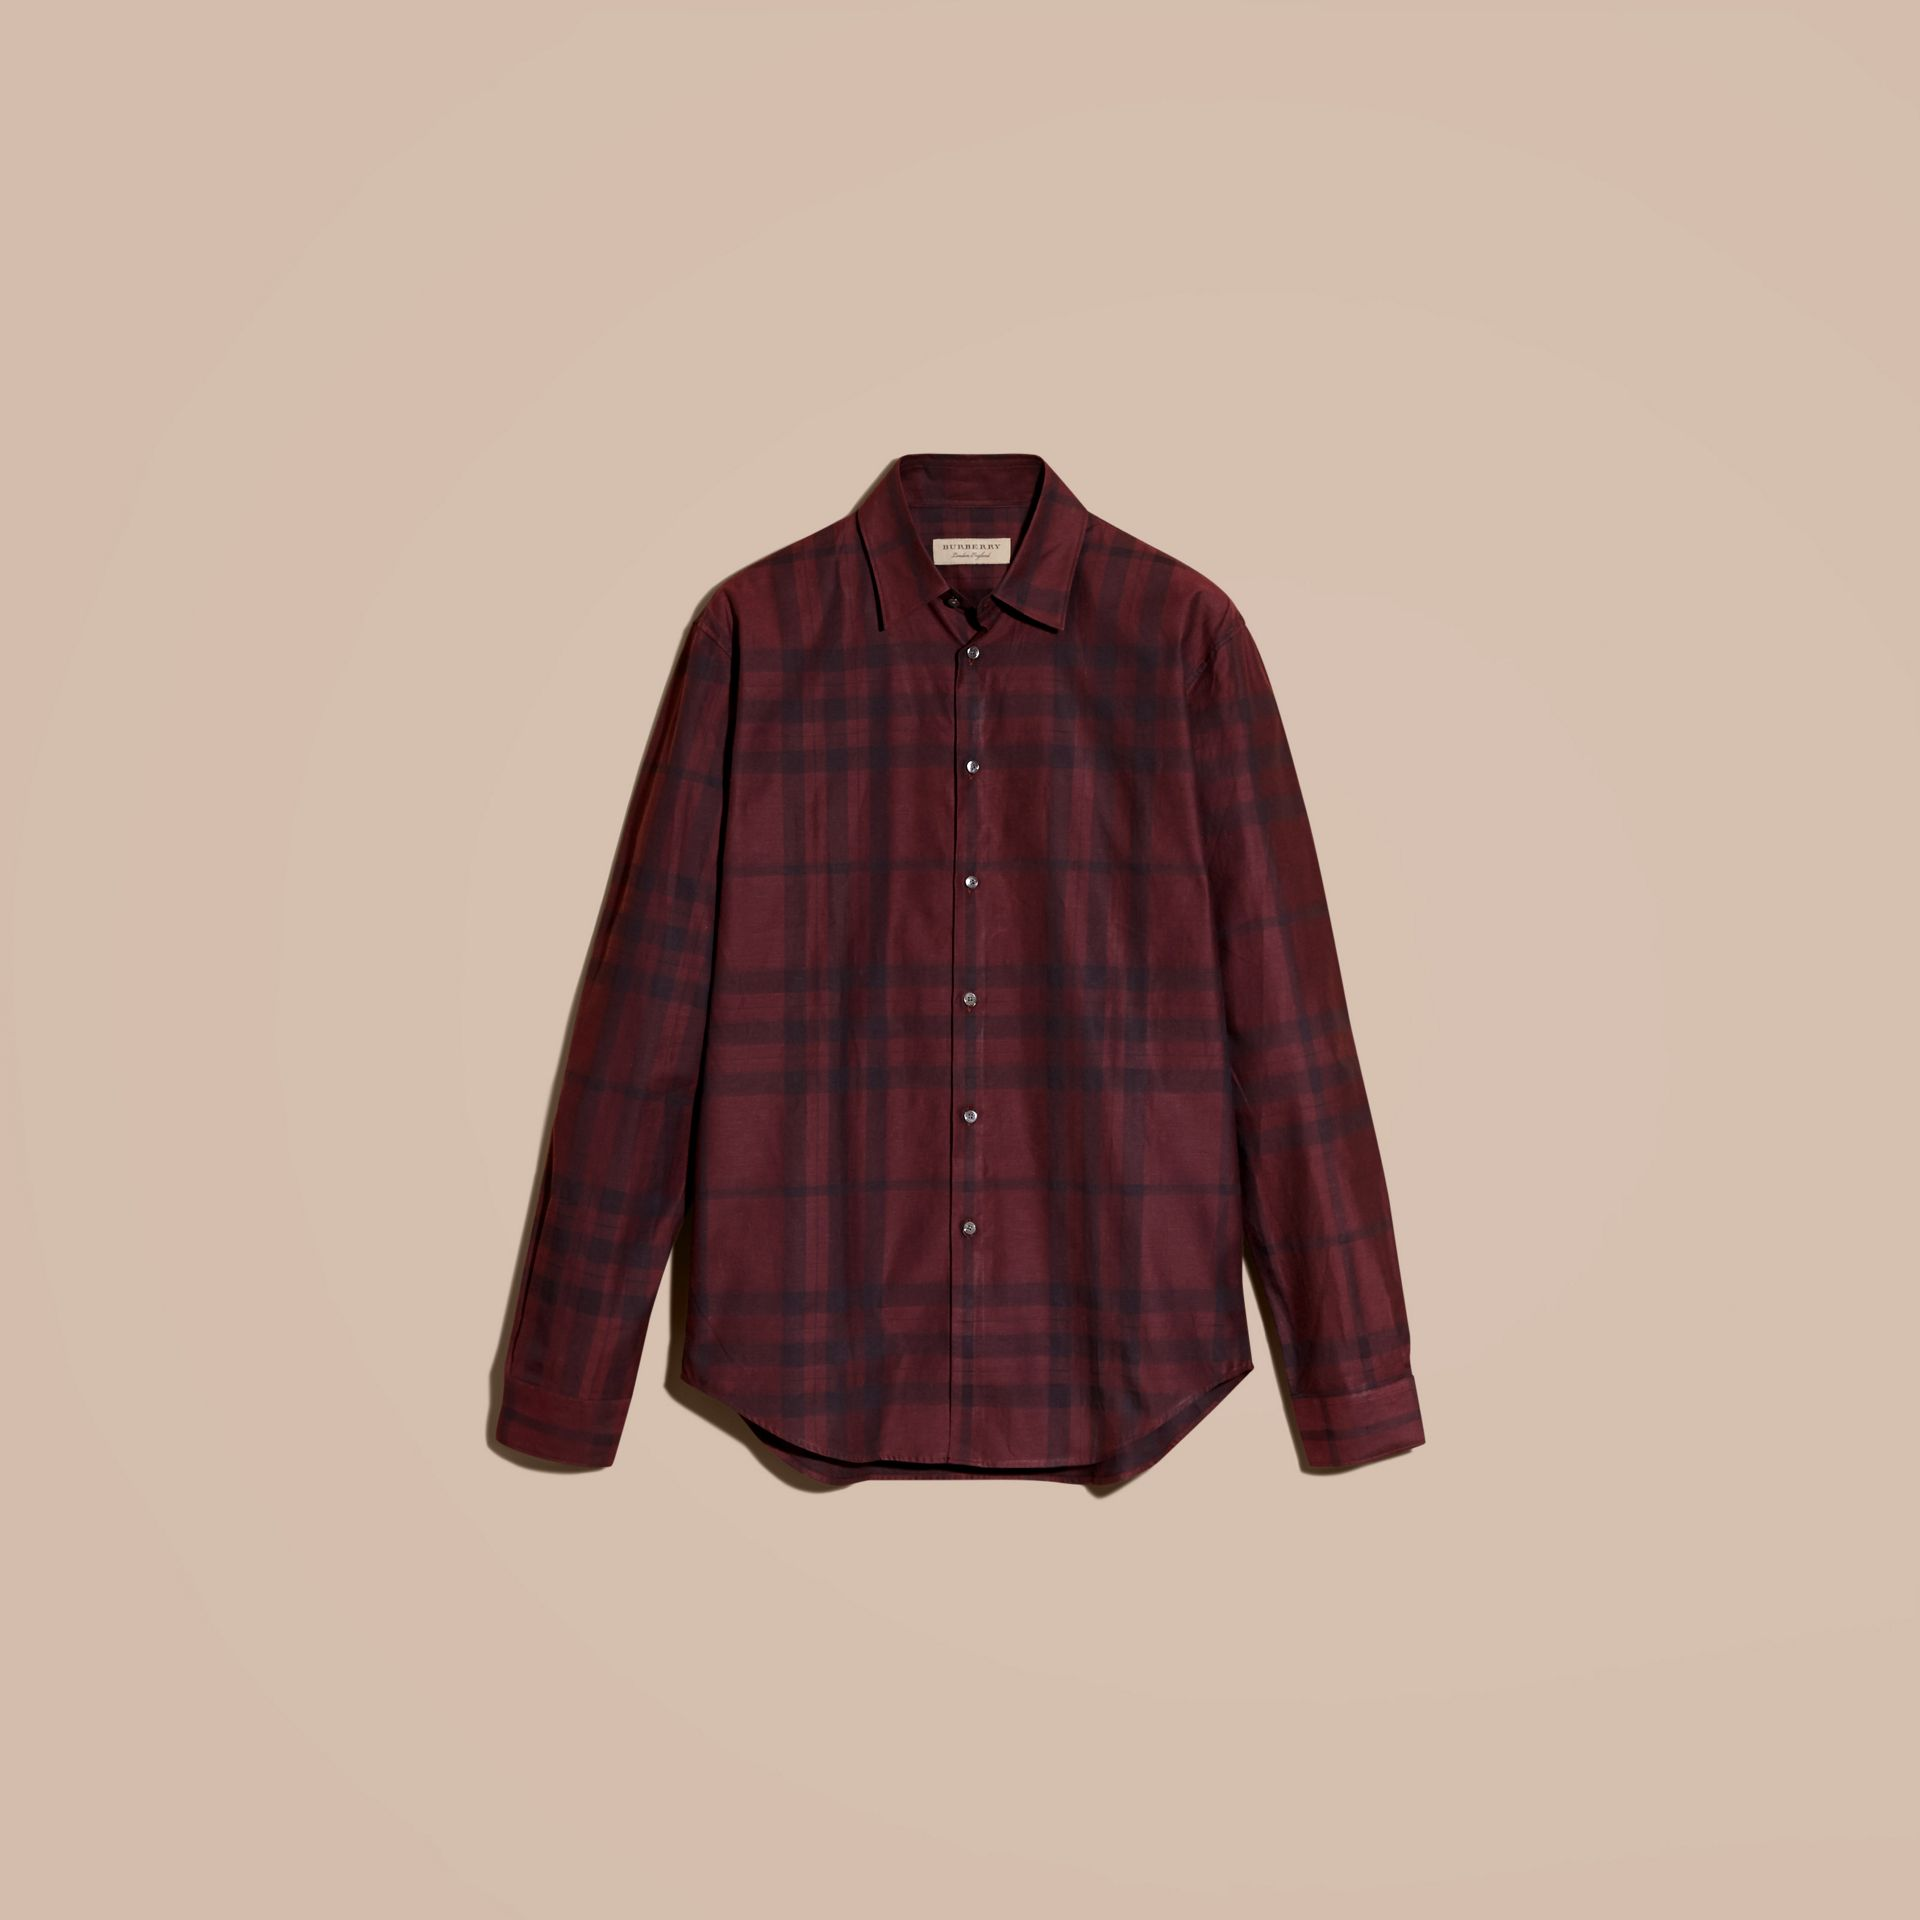 Deep burgundy Check Cotton Flannel Shirt Deep Burgundy - gallery image 4